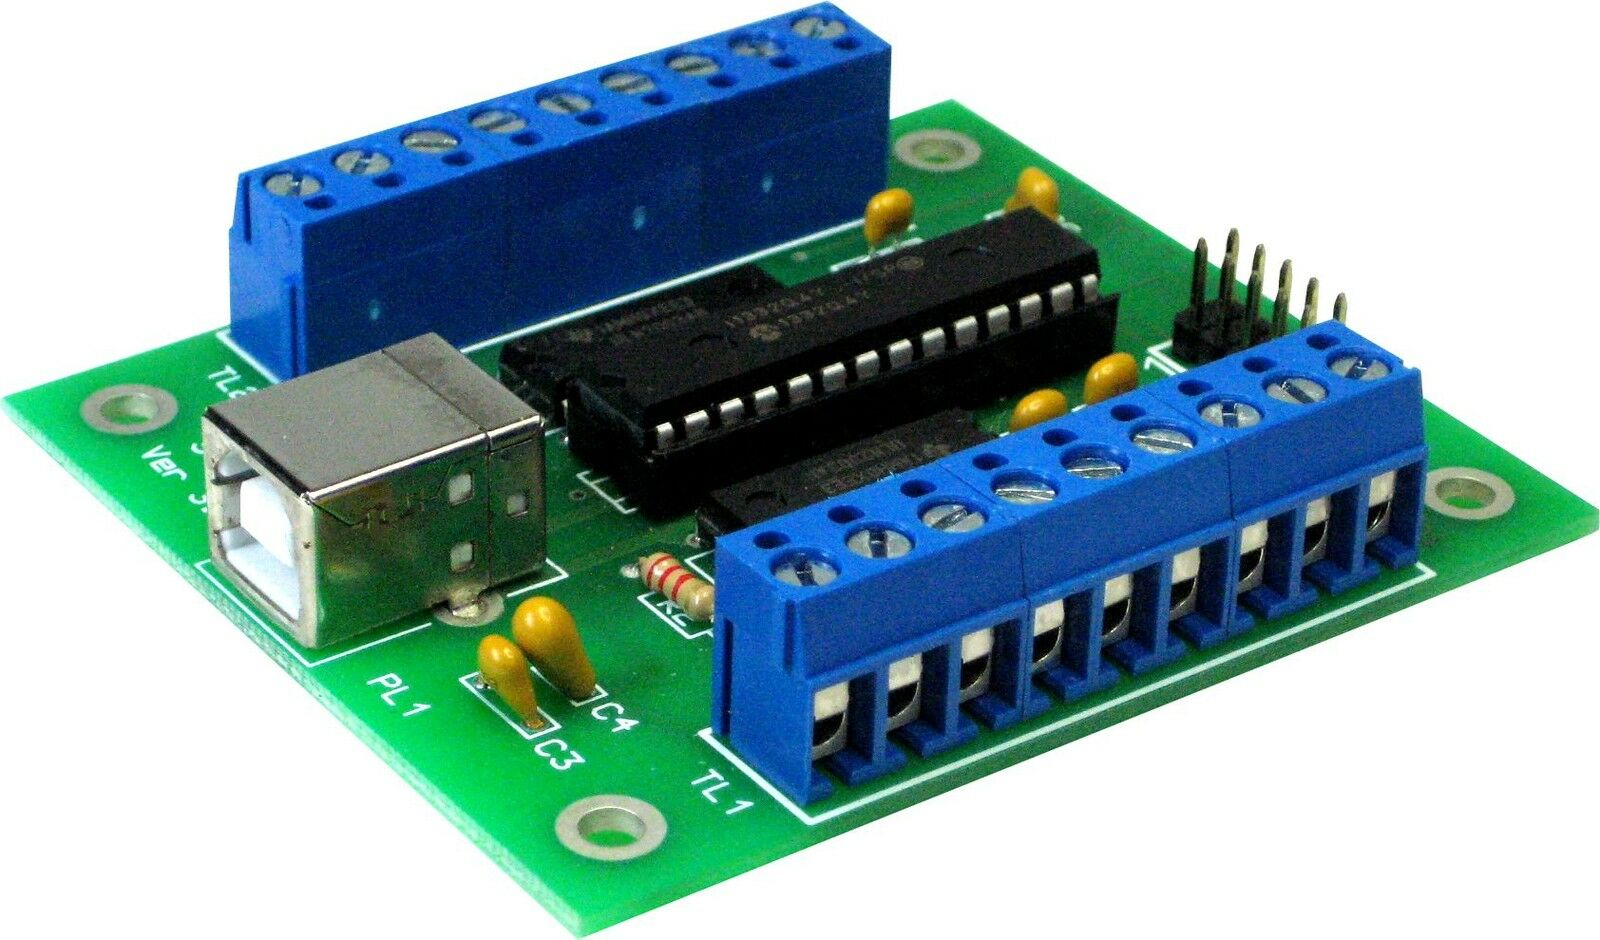 Stepperbee Stepper Motor Control From A Pc 39 S Usb Port Eur 42 57 Picclick De